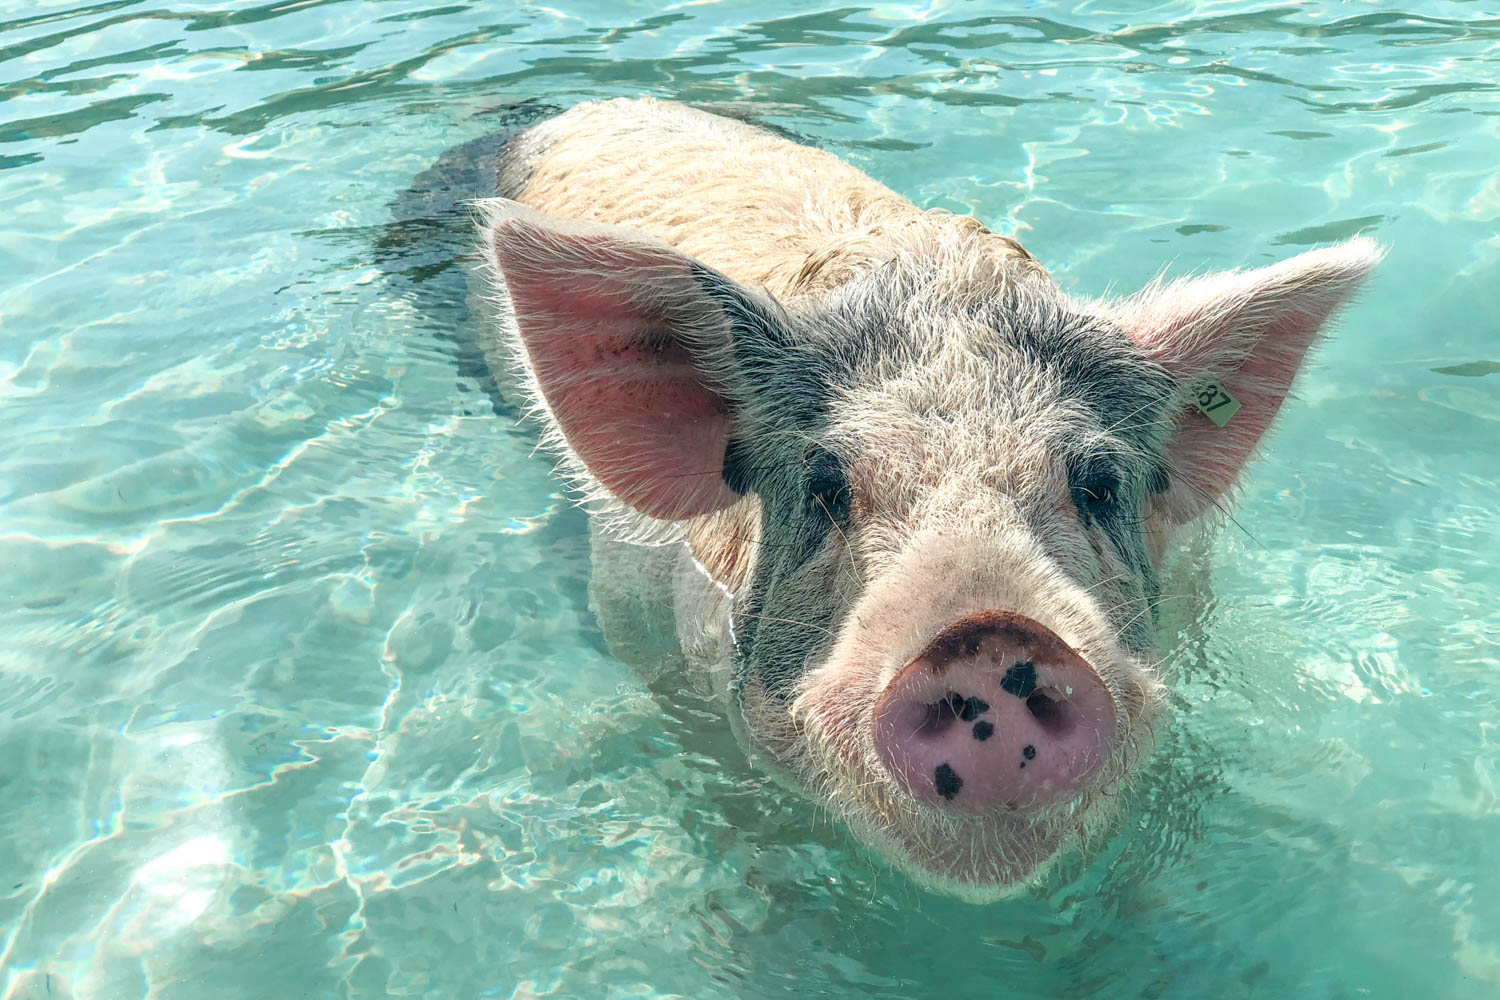 The Bahamas swimming pigs Exuma are the country's top tourist attraction. Pig Island Bahamas (Big Major Cay) is located near Staniel Cay.